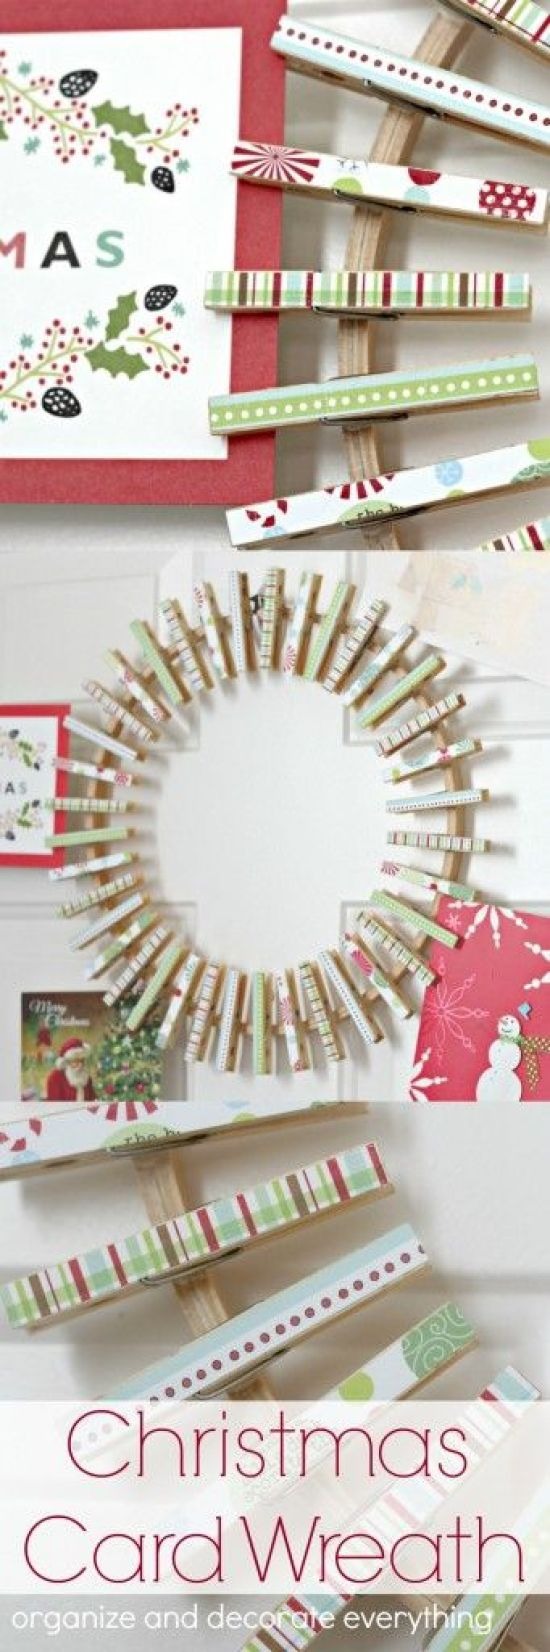 DIY Christmas Card Holder and Display Ideas - landeelu.com